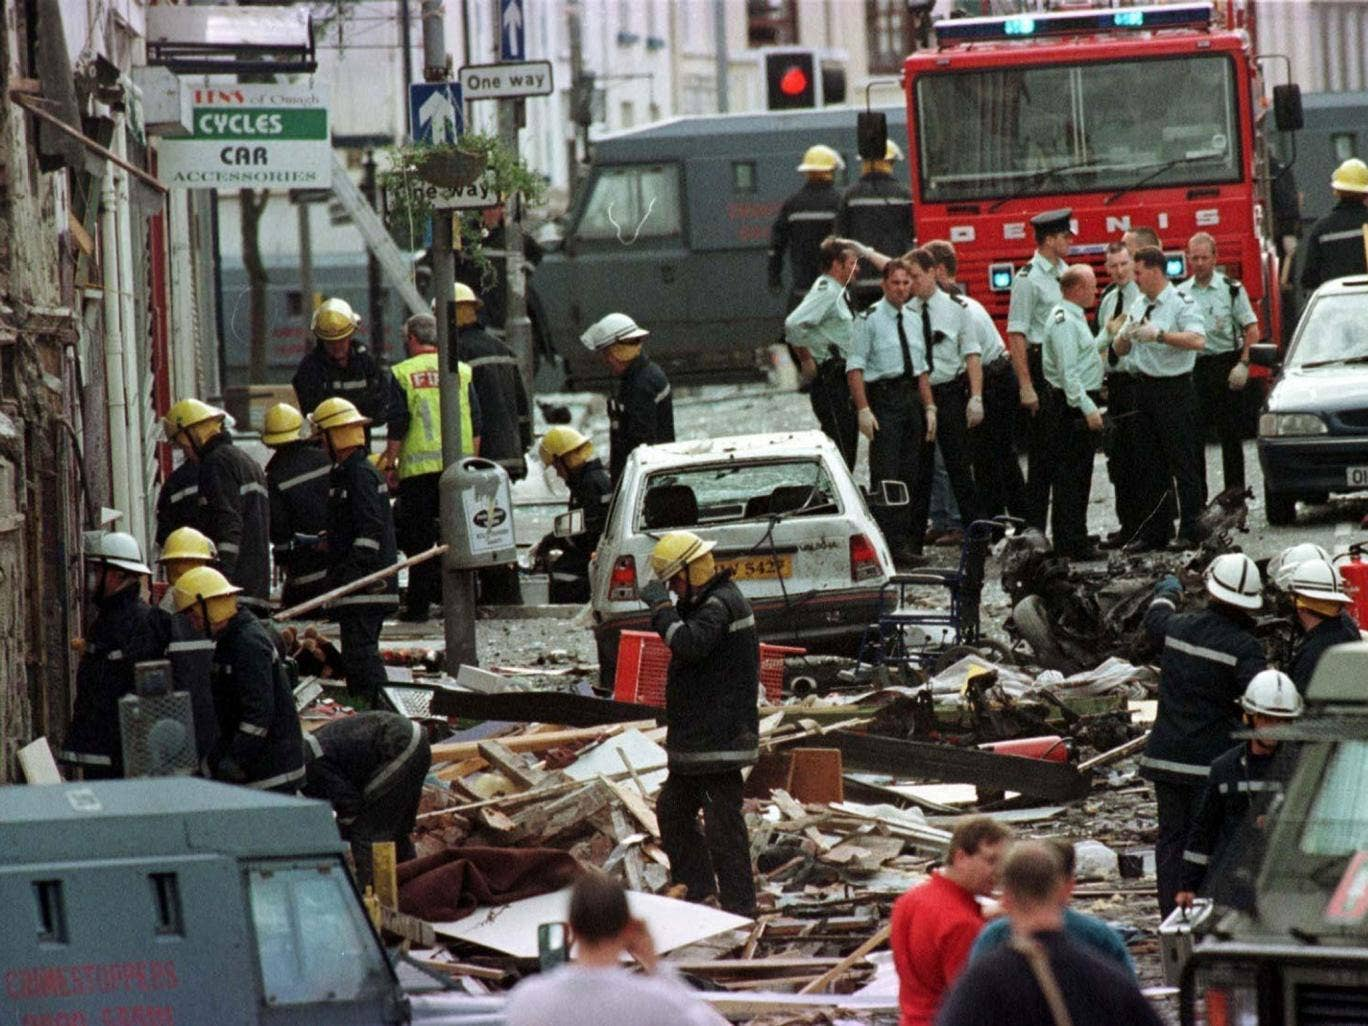 Market Street in Omagh after the bombing in 1998, for which no one has been convicted